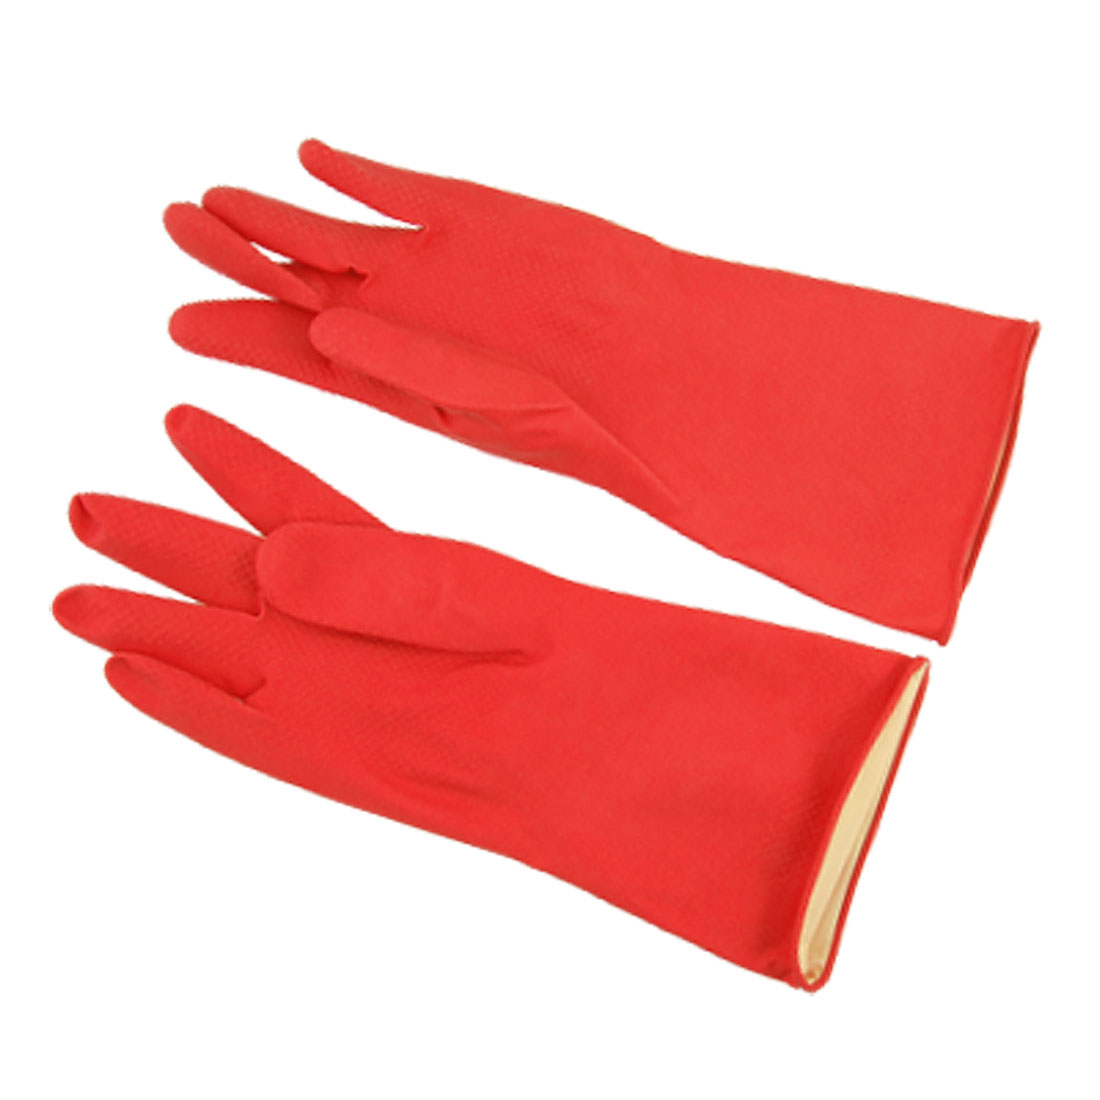 Red Long Household Wash Clean Latex Gloves Size Small 1 Pair